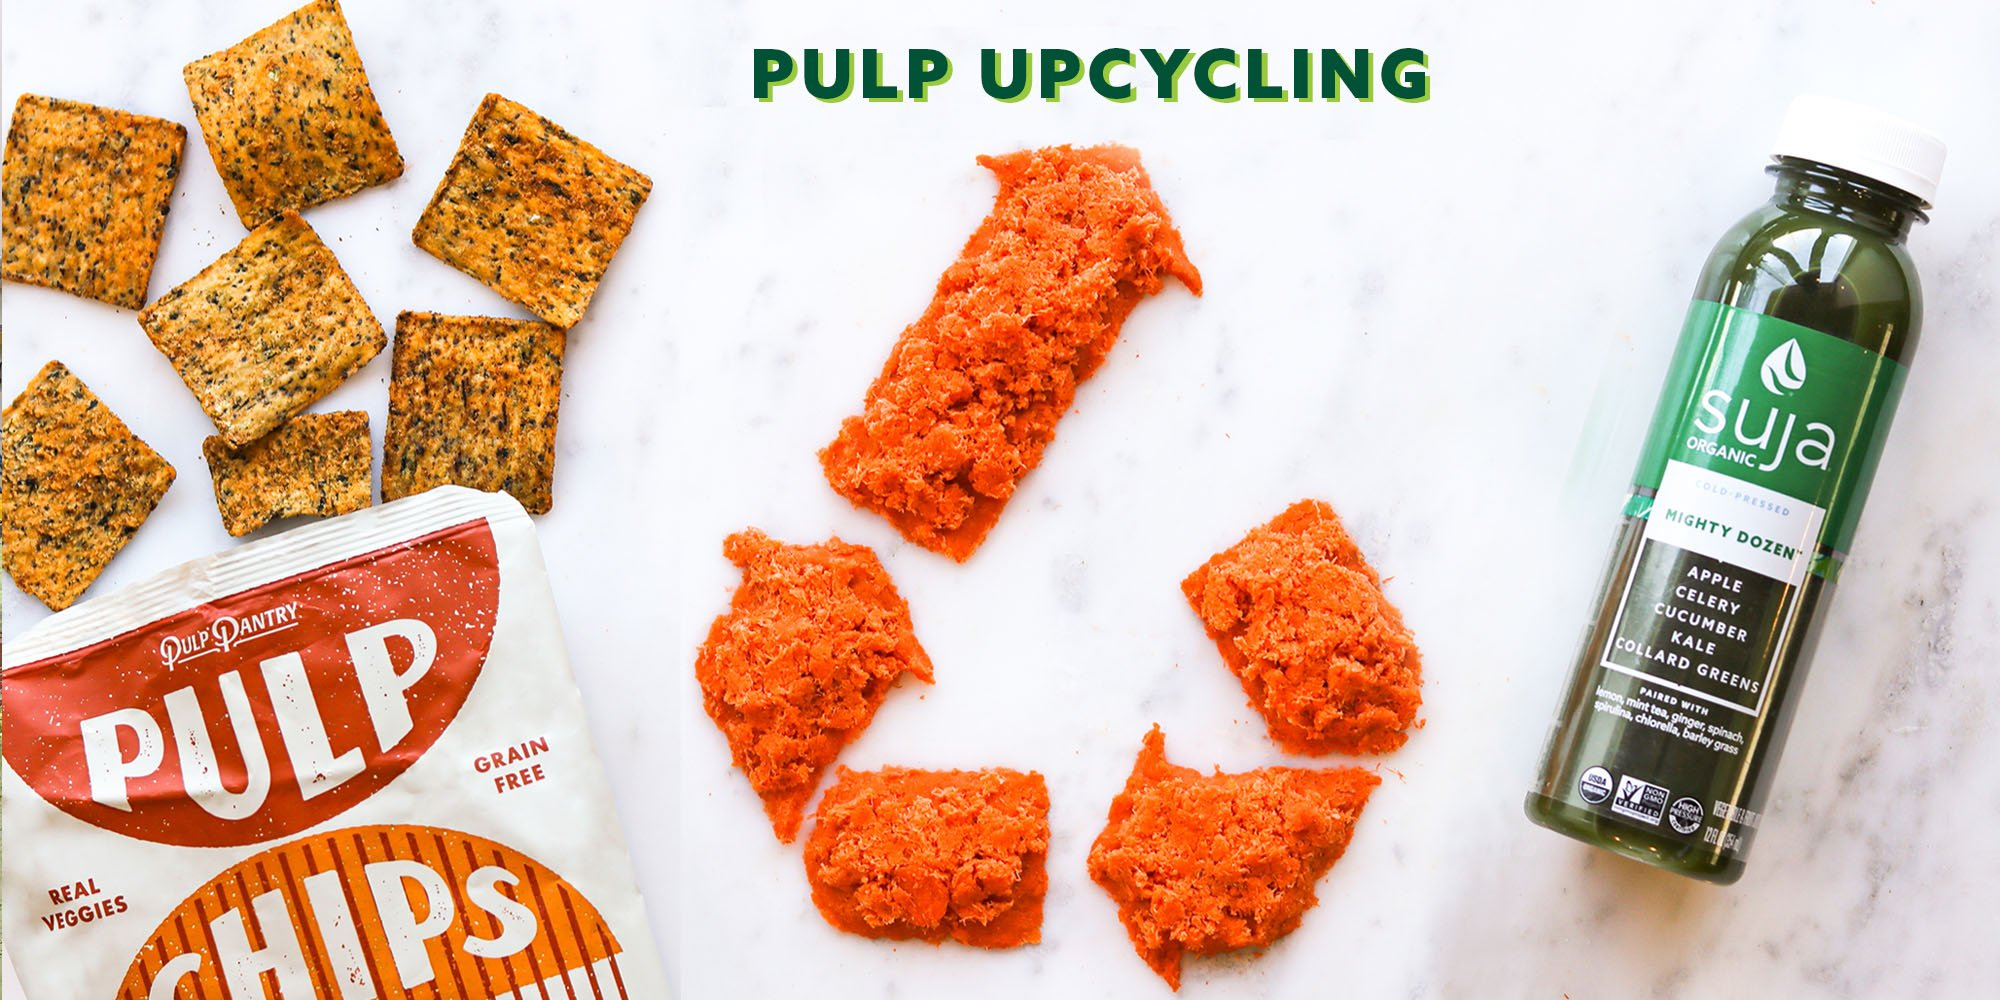 Pulp Upcycling